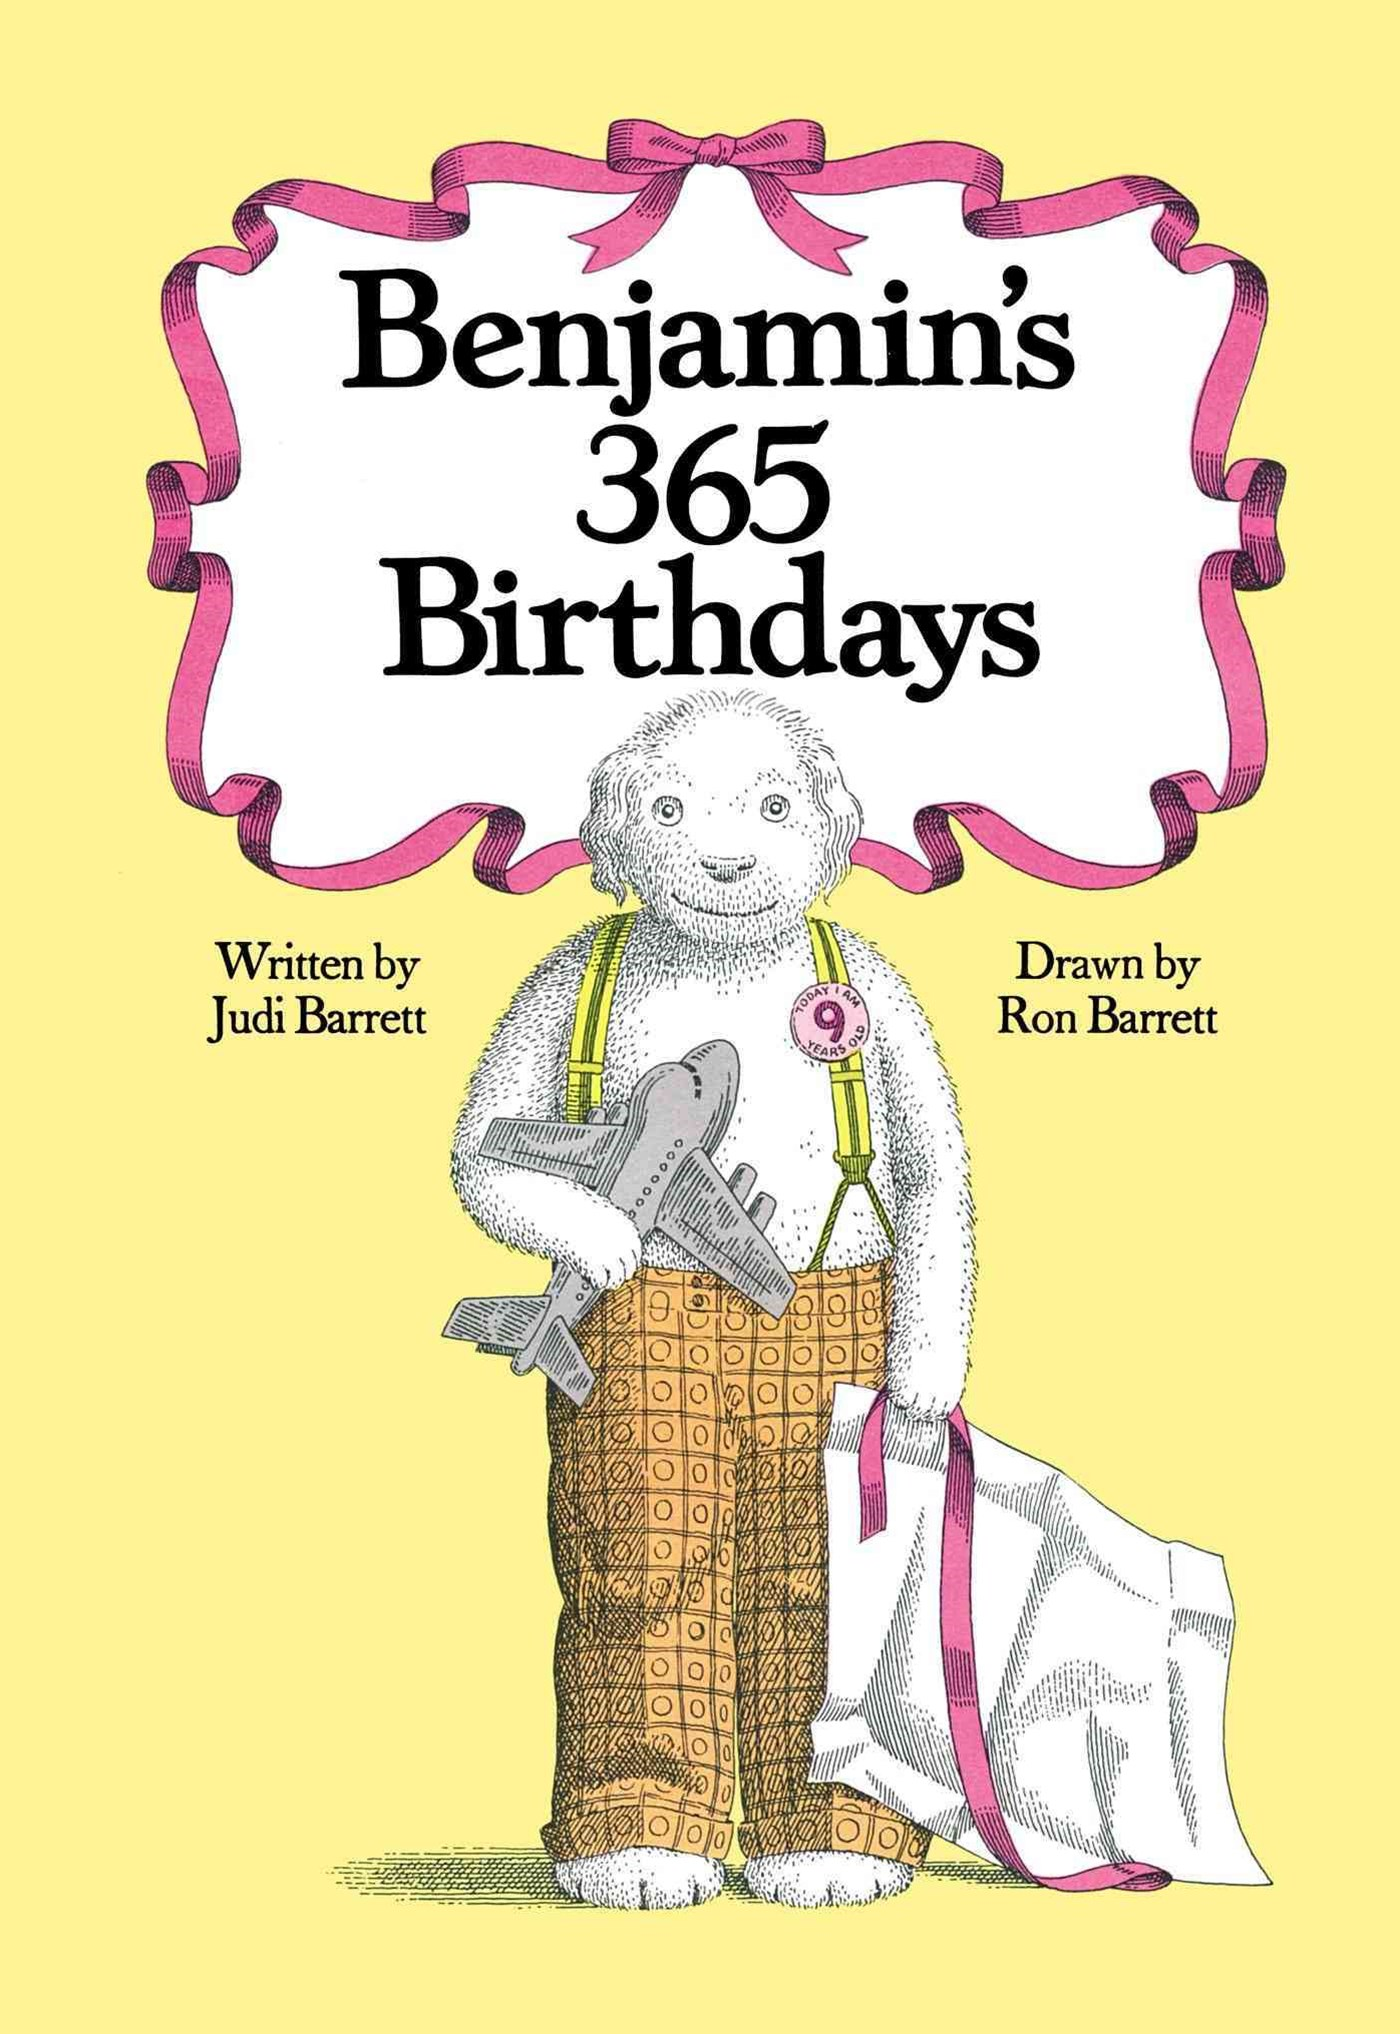 Benjamin's 365 Birthdays